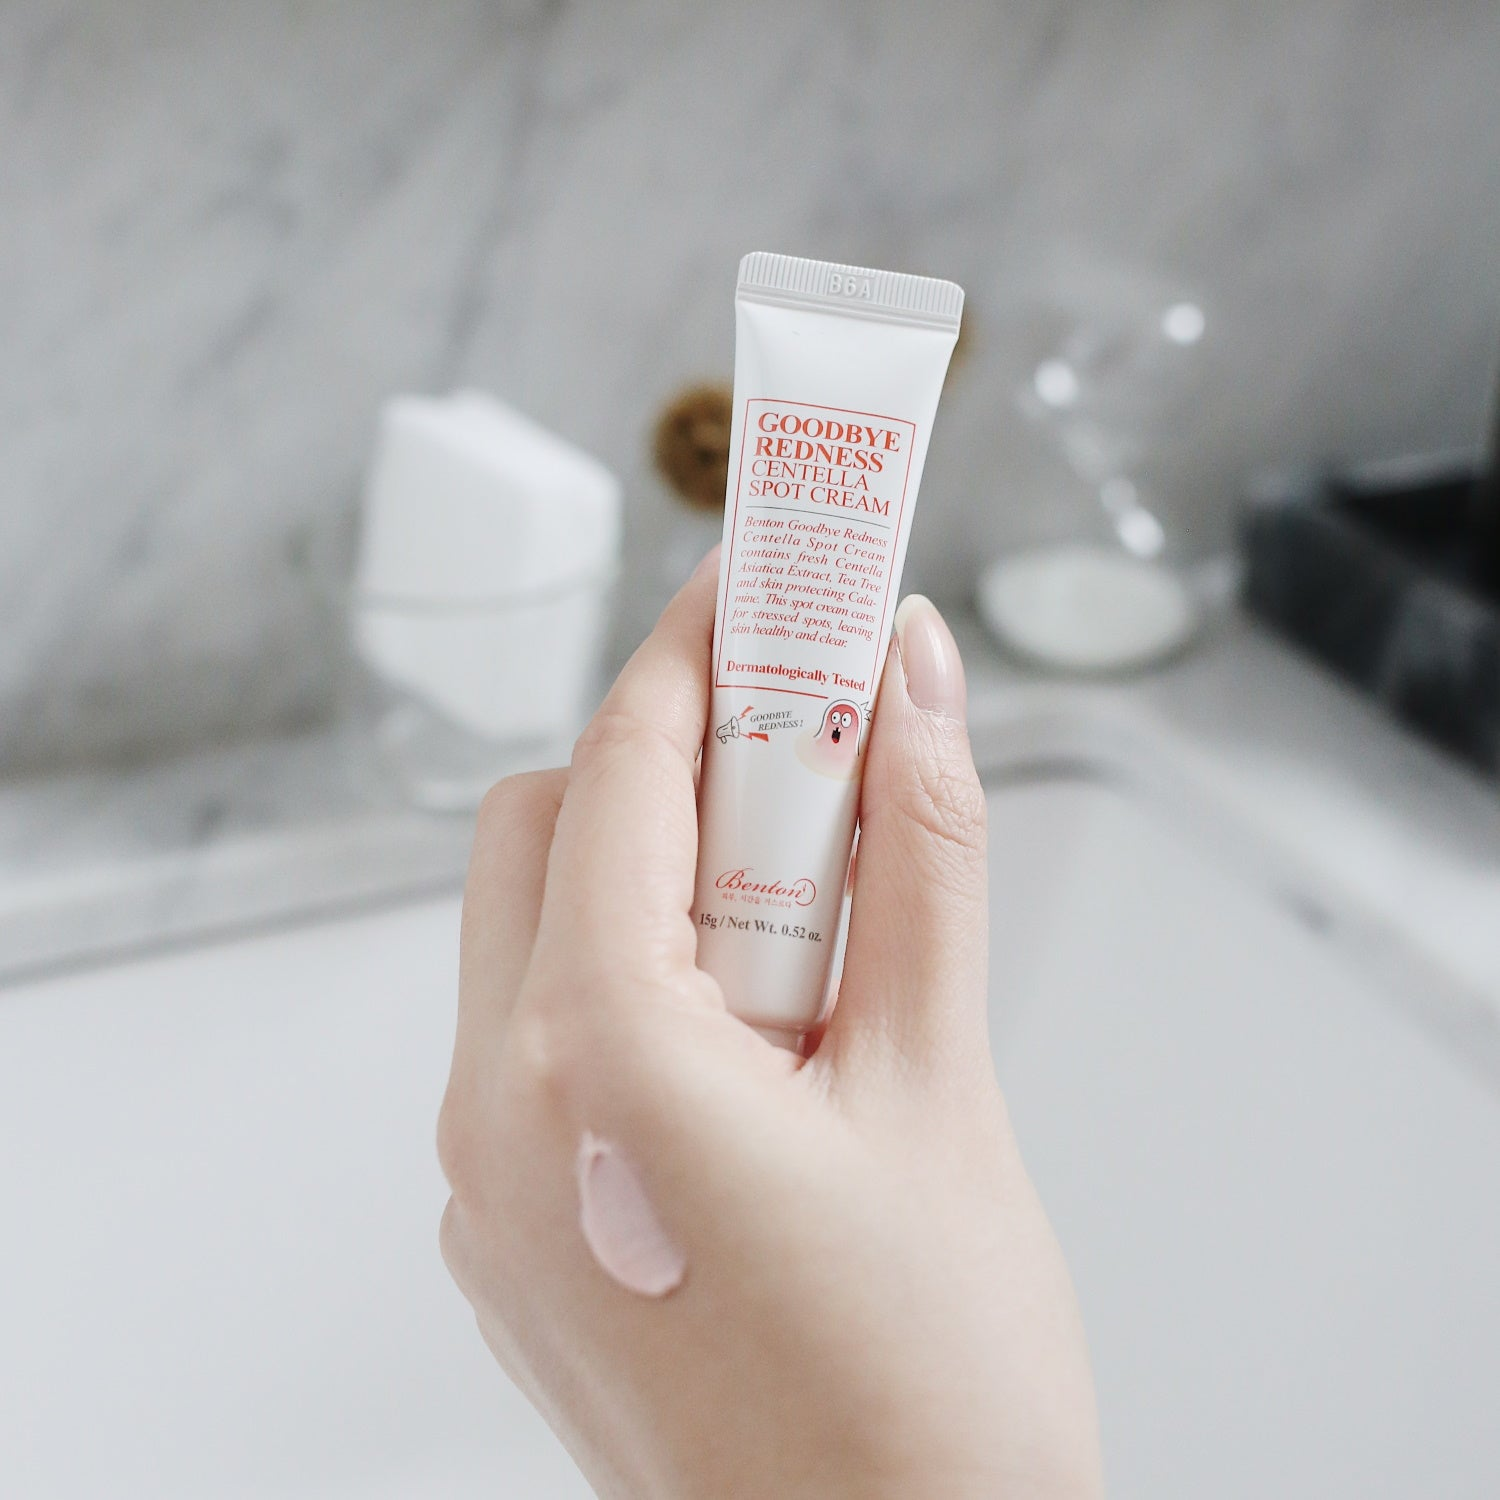 Goodbye Redness Centella Spot Cream